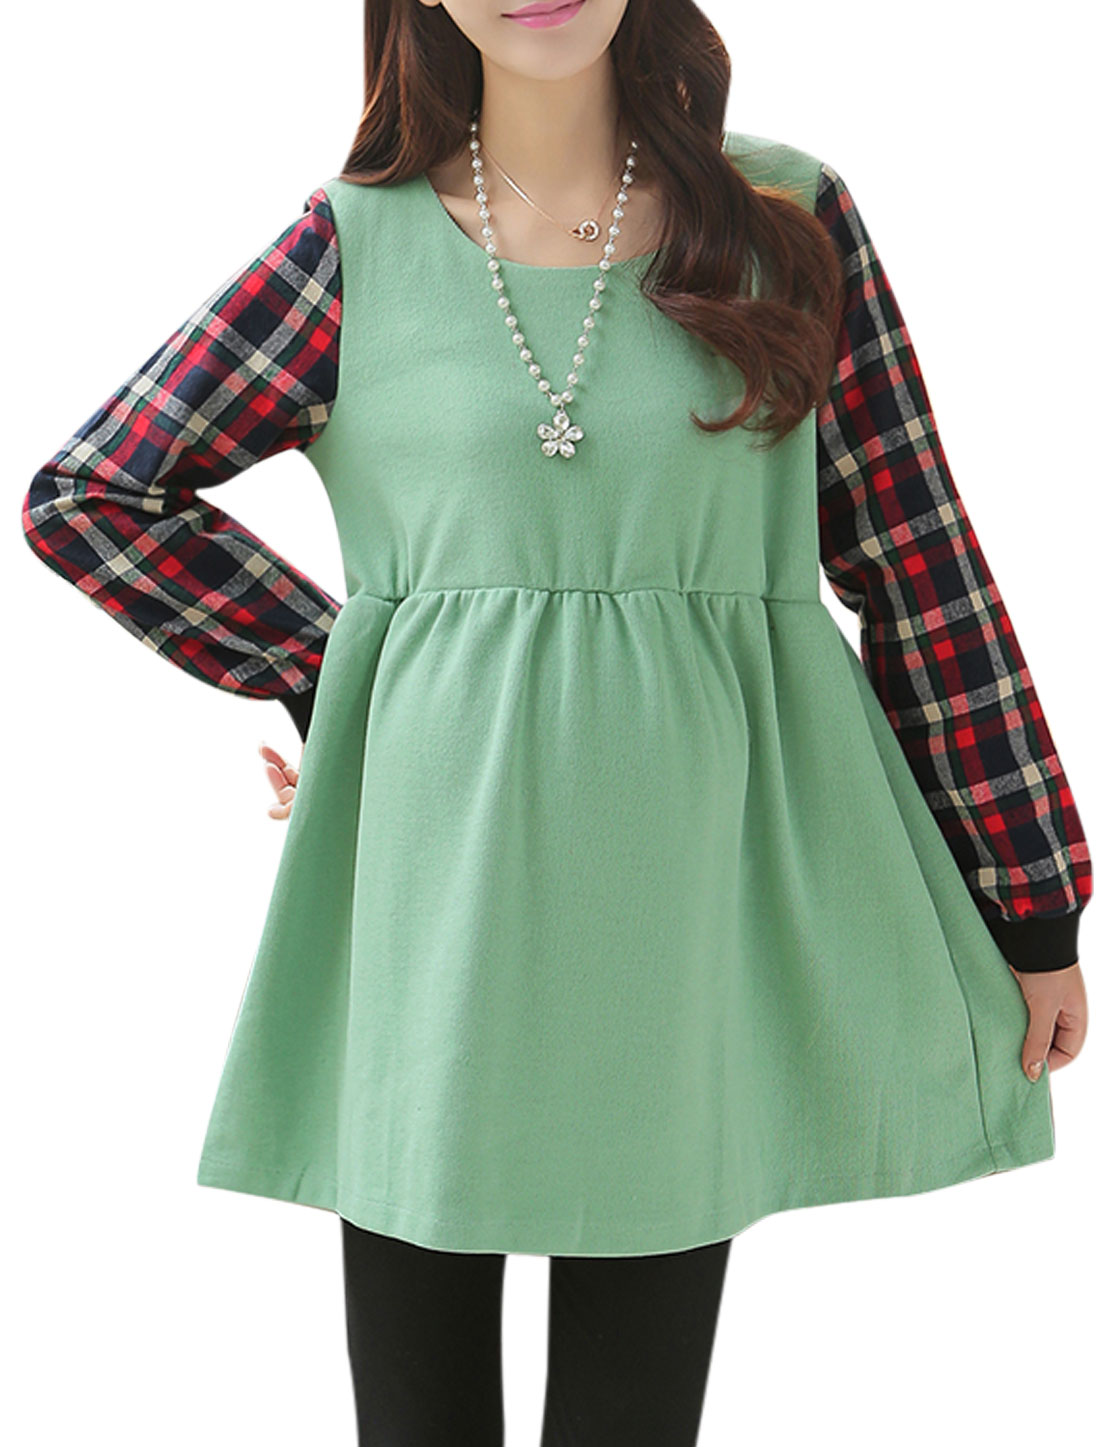 Maternity Stretchy Waist Design Long Sleeves Green Dress L